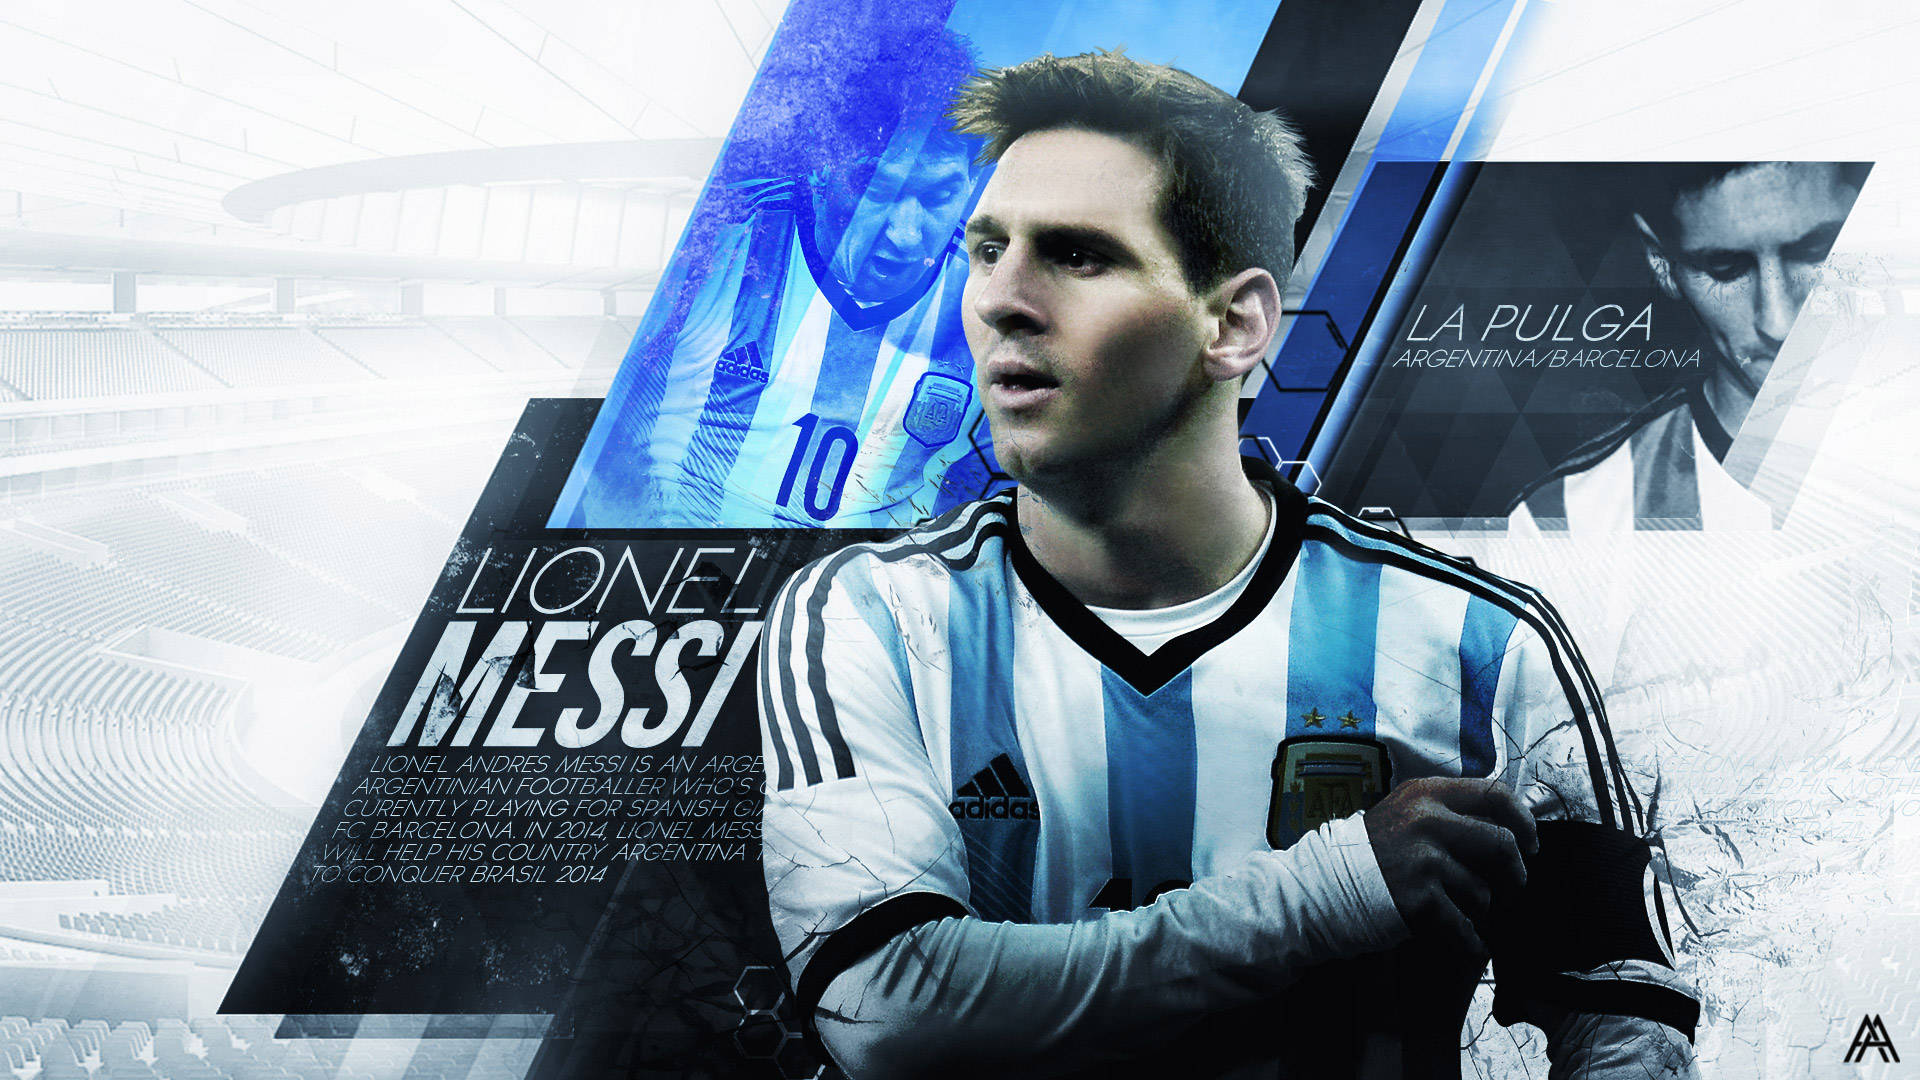 Messi Wallpapers HD  Wallpaper  1920x1080